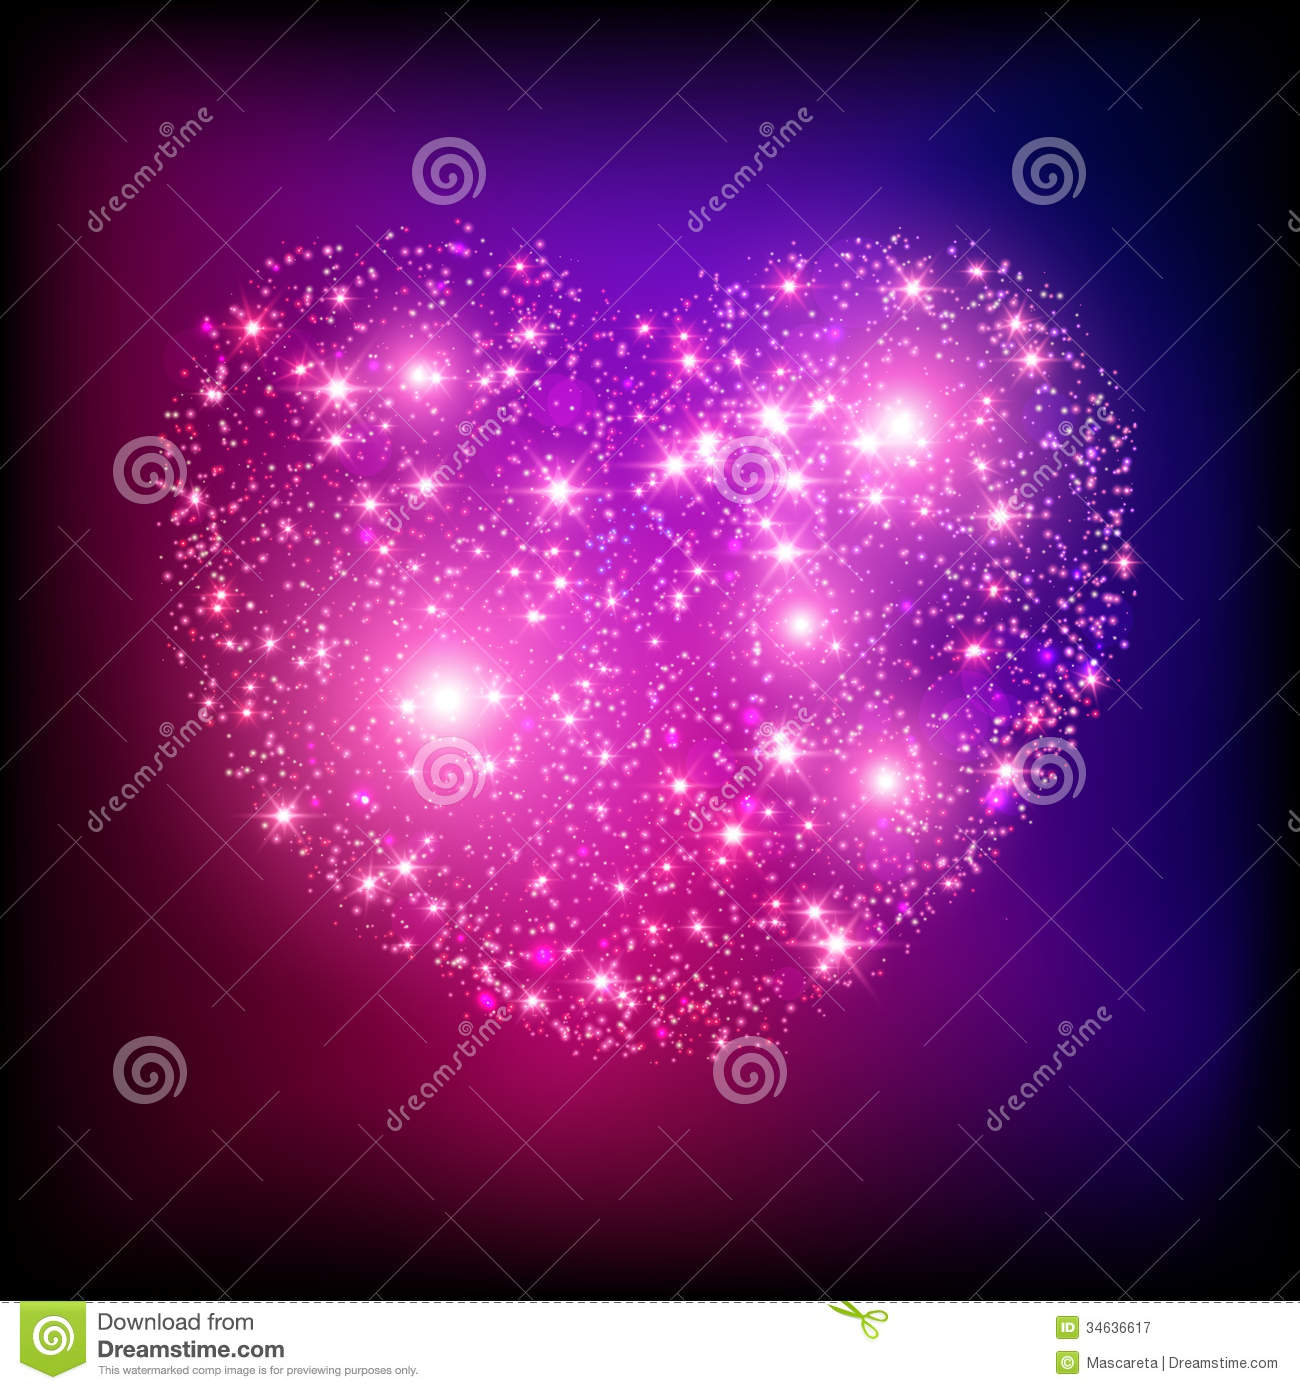 3d Animated Wallpaper Christmas Sparkle Bright Pink Heart Royalty Free Stock Photography